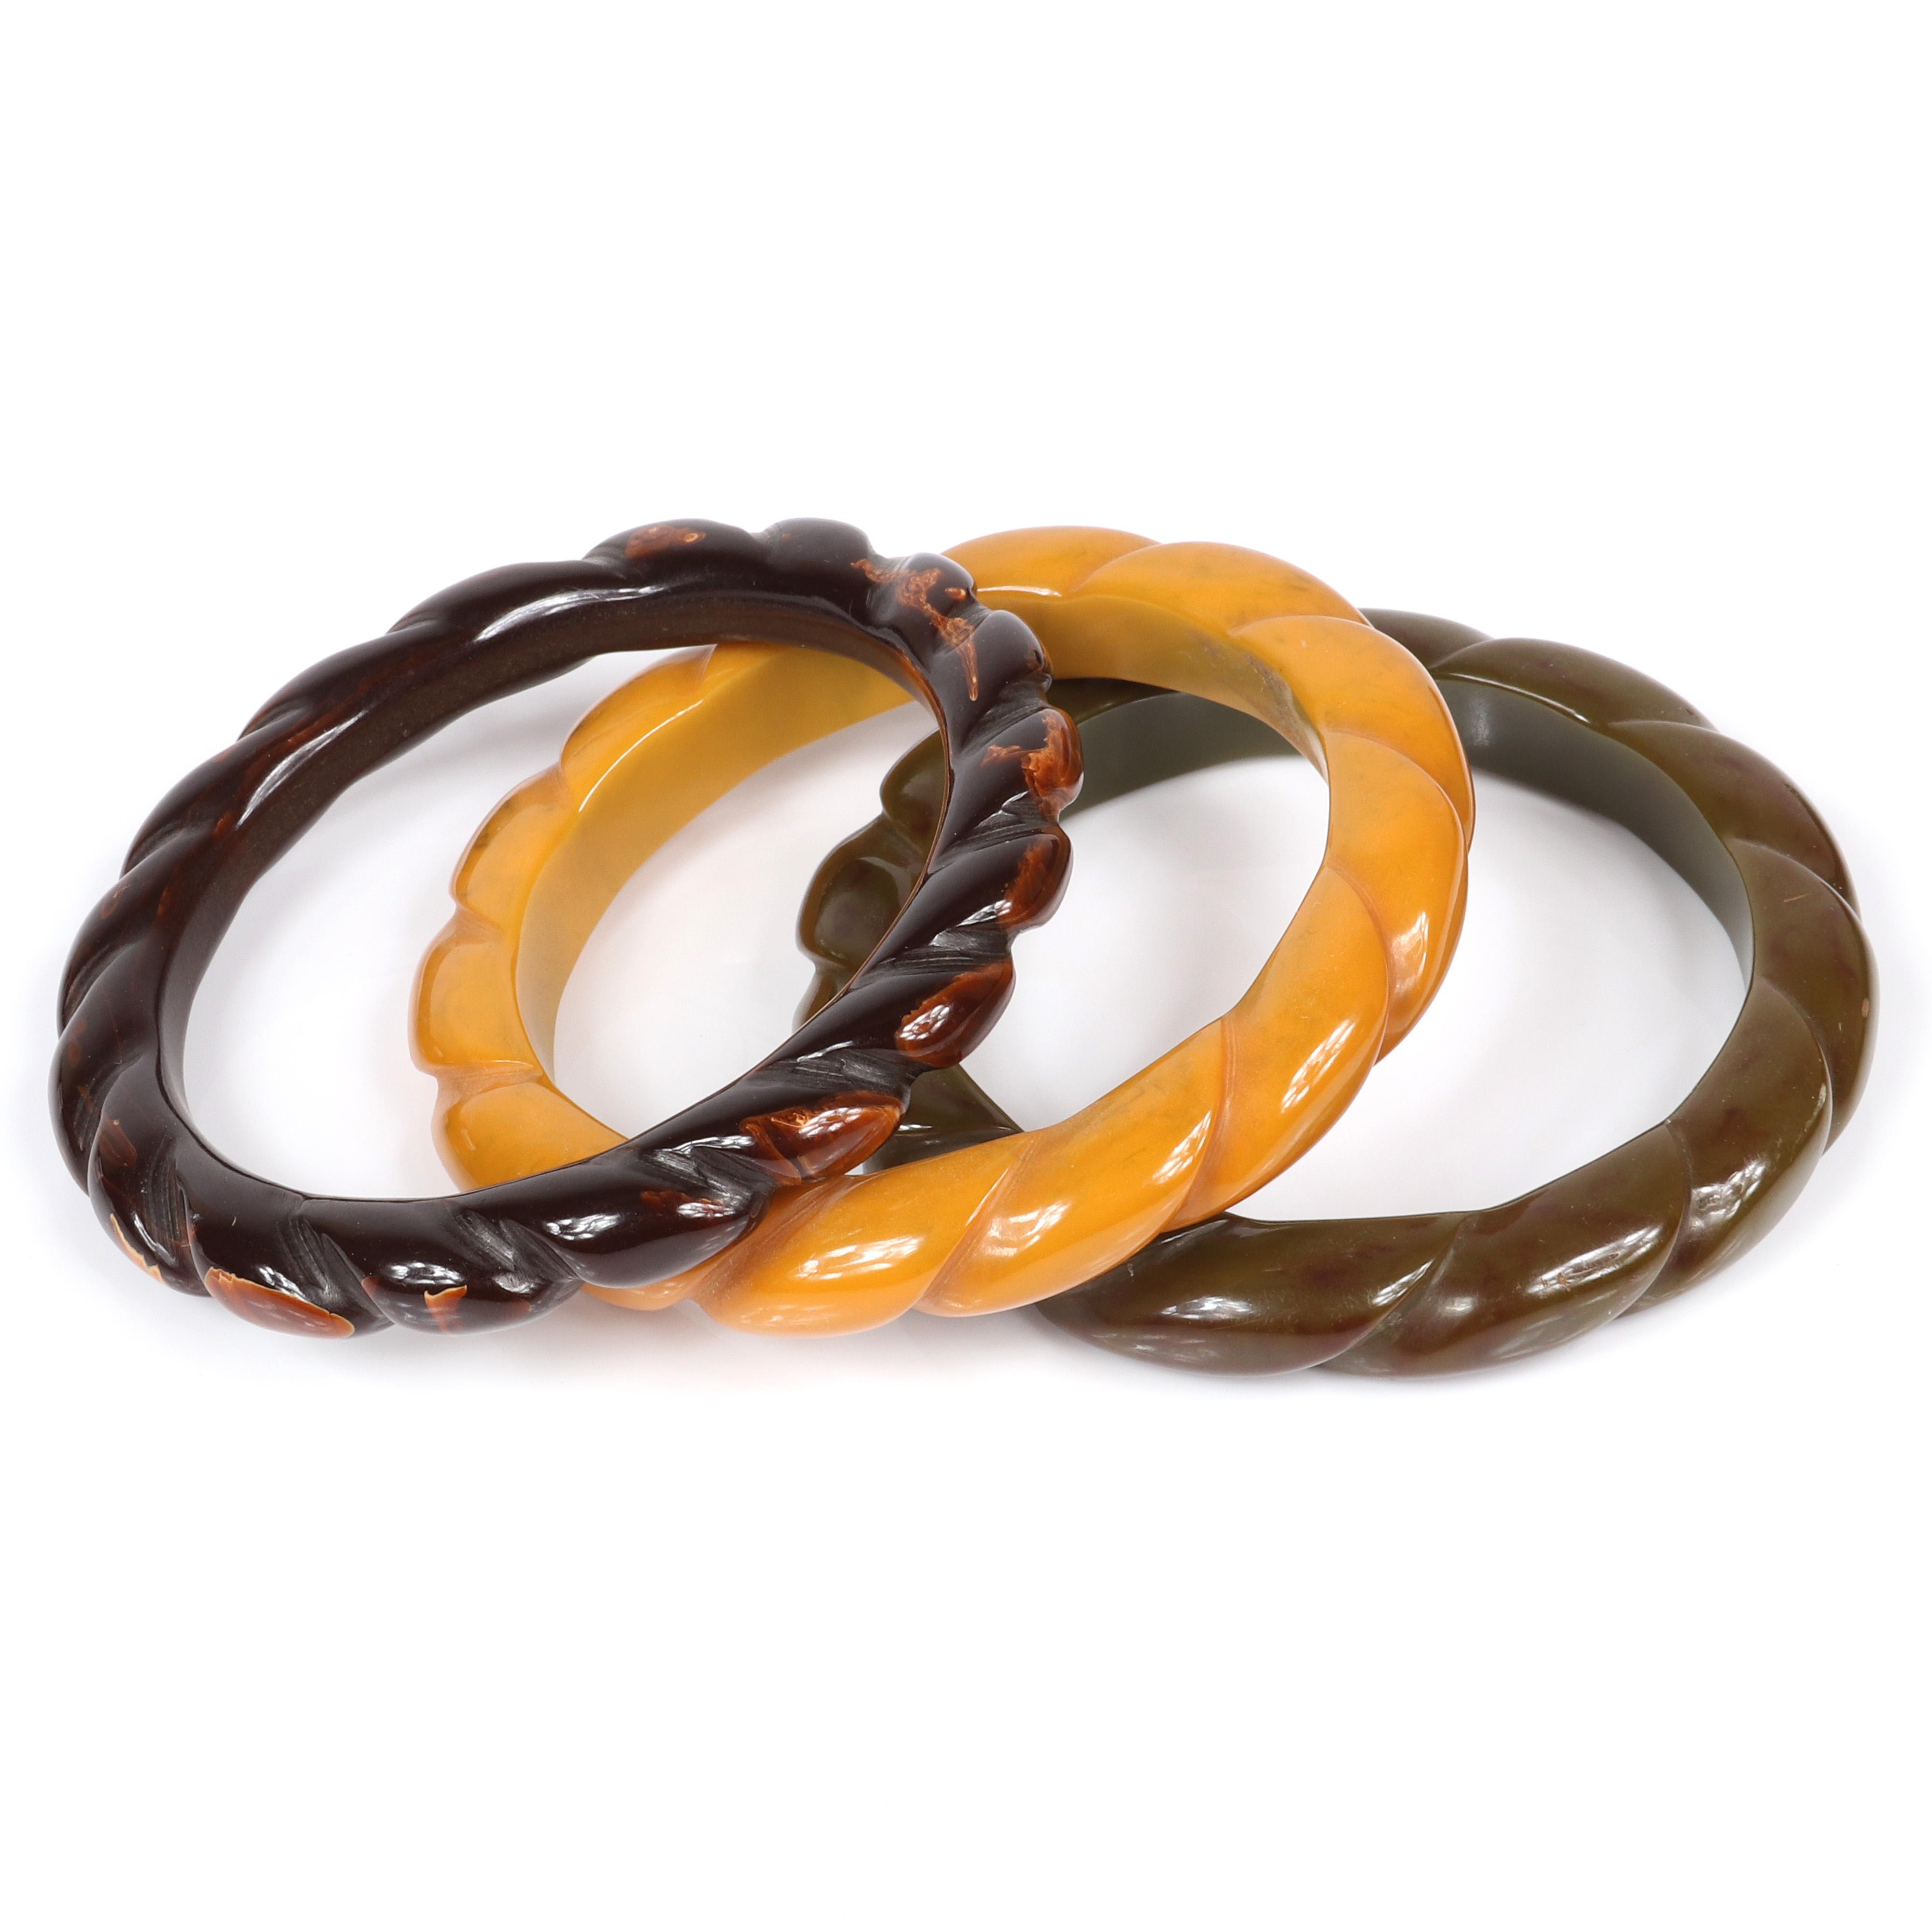 """Three Bakelite bangle bracelets with carved swirl twist design in marbled olive green, brown and butterscotch. 2 1/2"""" inner diam, 3/8""""W (each)"""